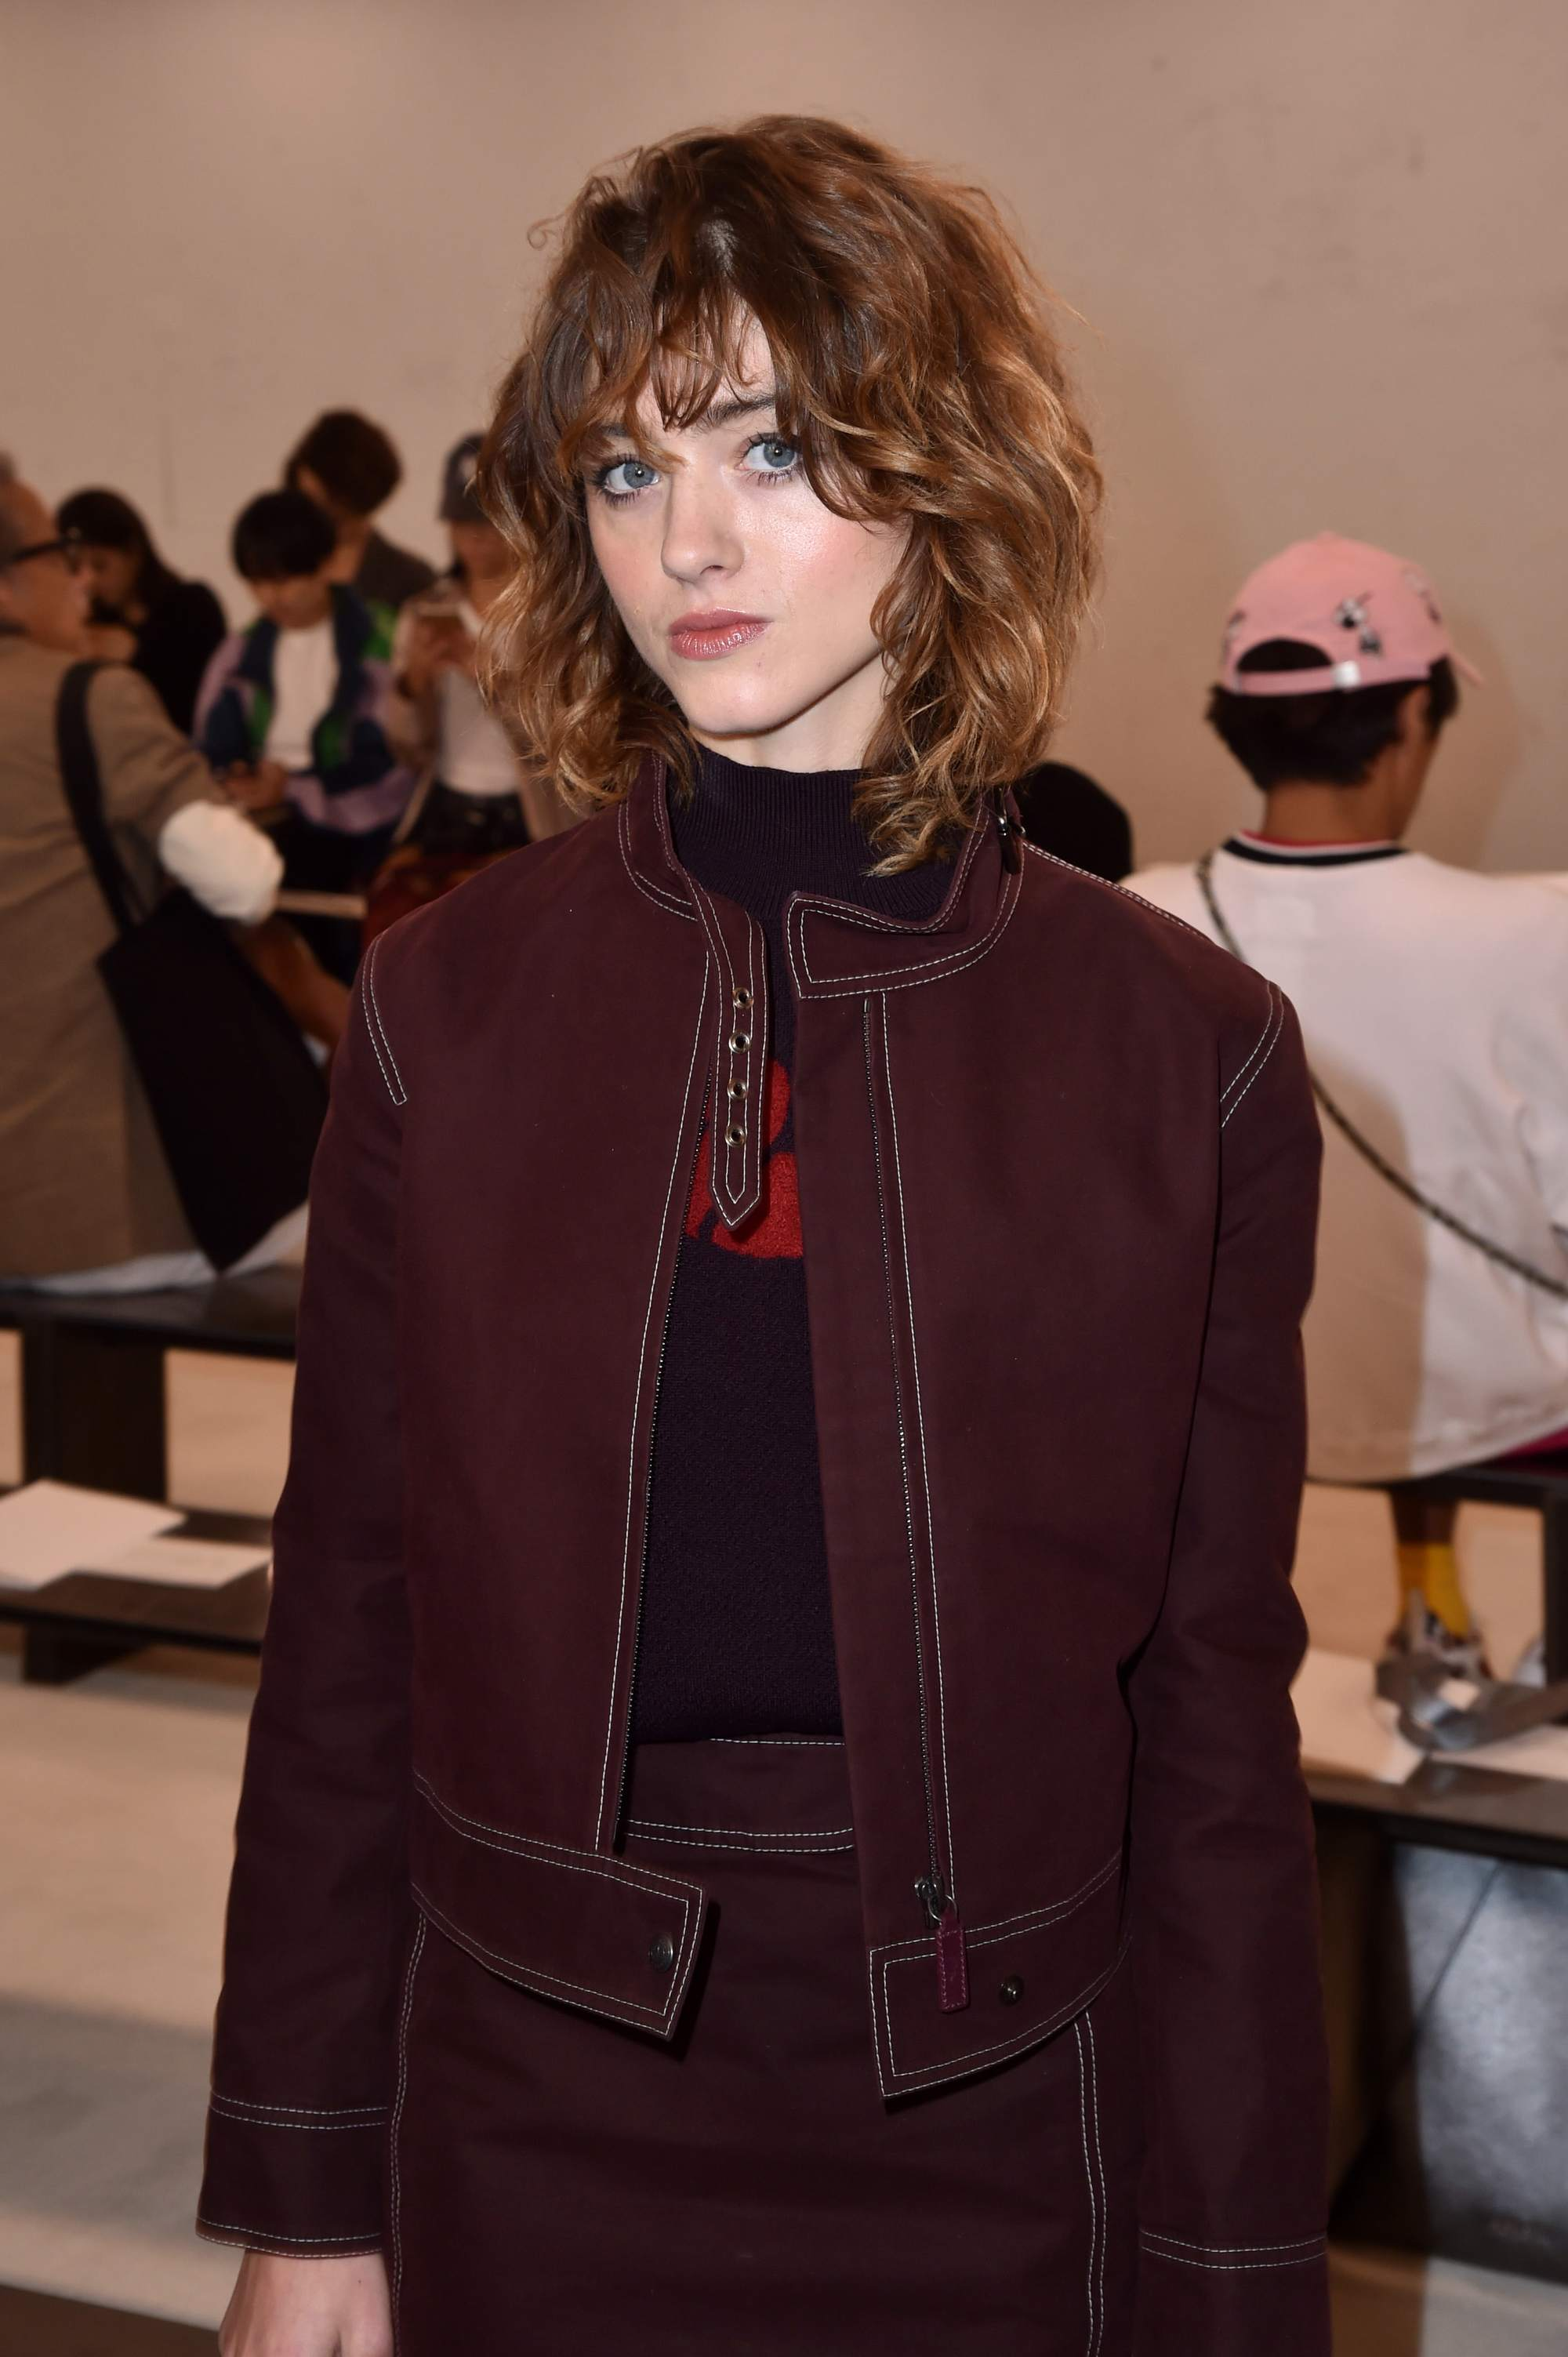 Natalia Dyer with shoulder-length shaggy chestnut brown hair with shaggy fringe, wearing a red denim jacket and skirt